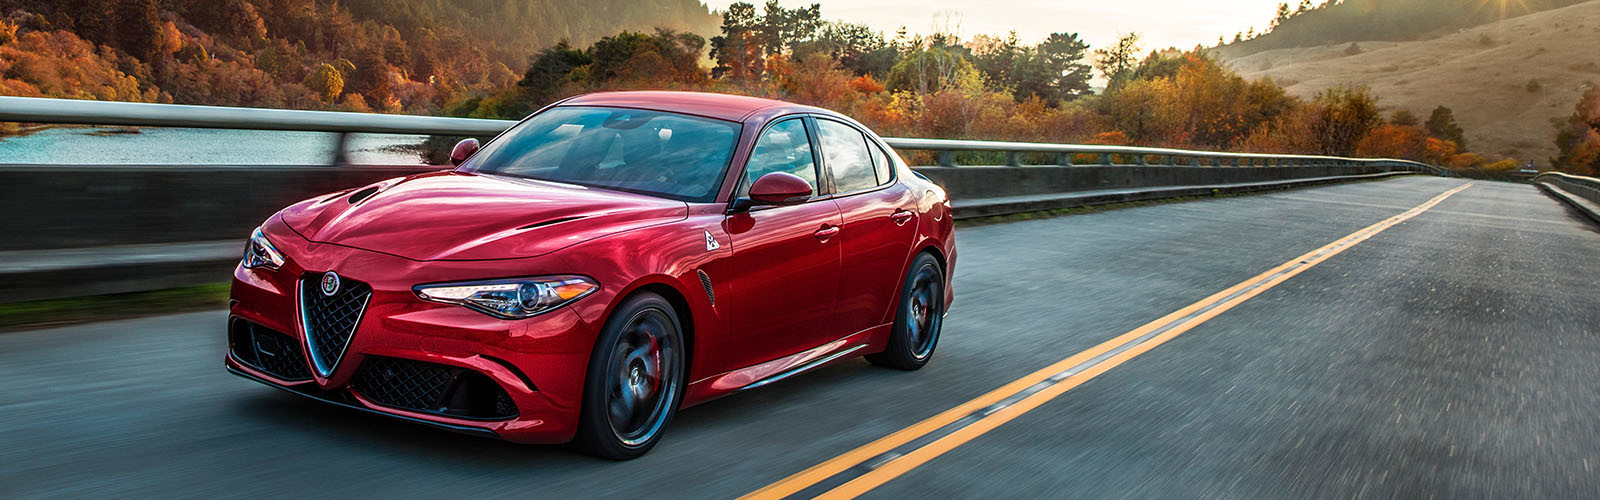 A red 2020 Alfa Romeo Giulia being driven down the road